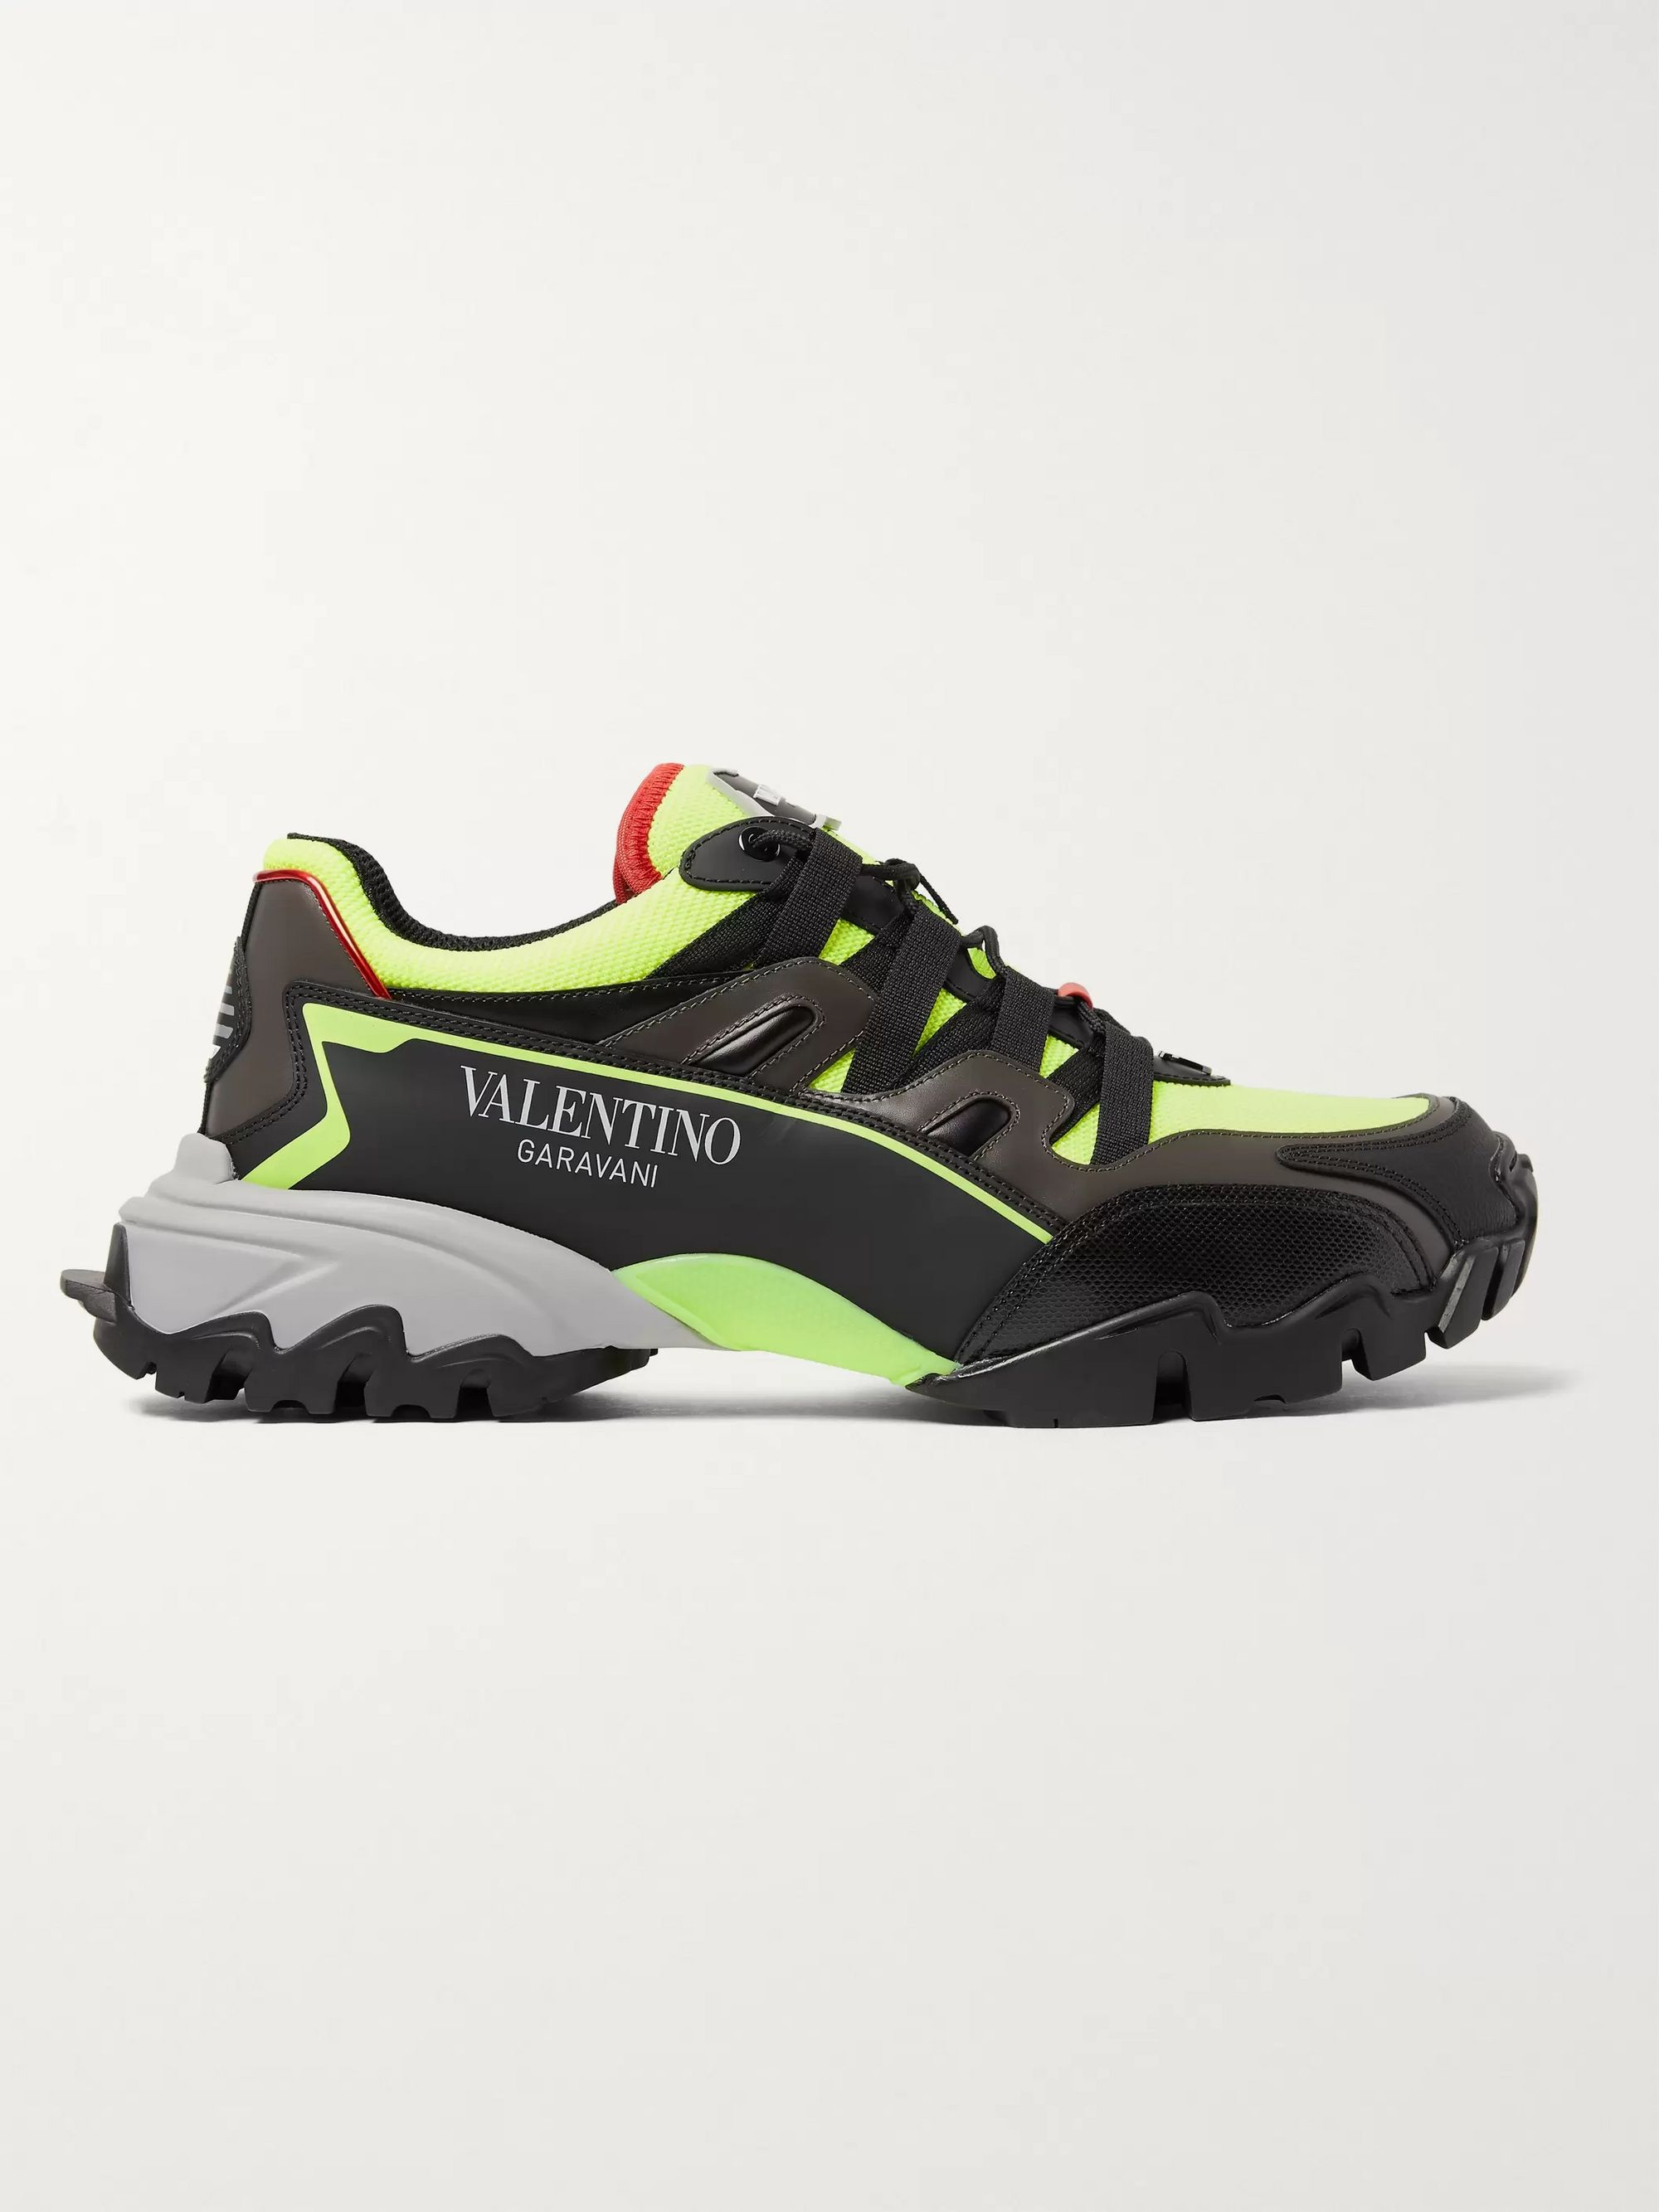 Valentino Valentino Garavani Climbers Mesh, Leather and Rubber Sneakers